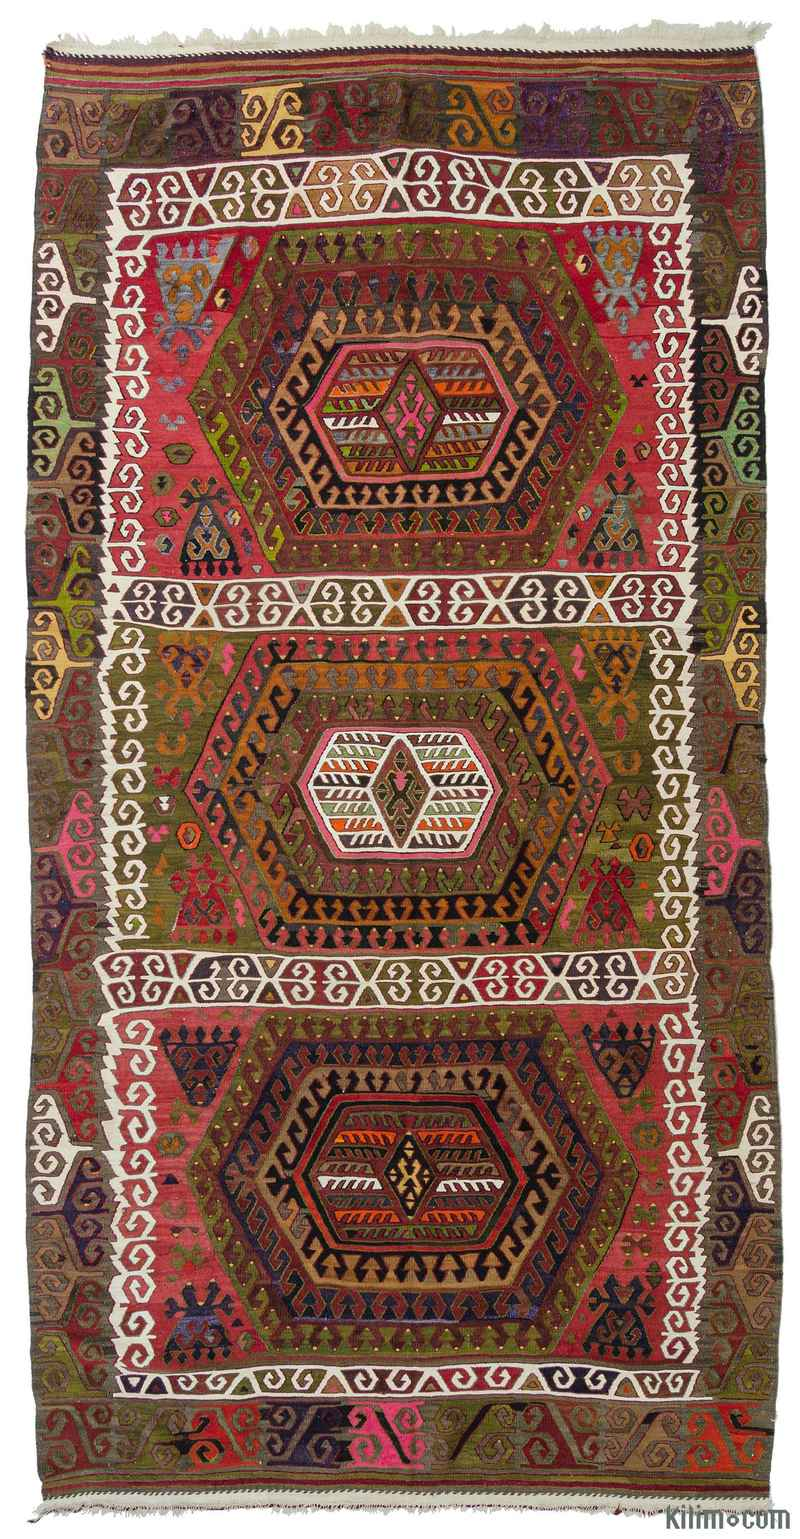 k0010576 green multicolor vintage sivrihisar kilim rug. Black Bedroom Furniture Sets. Home Design Ideas